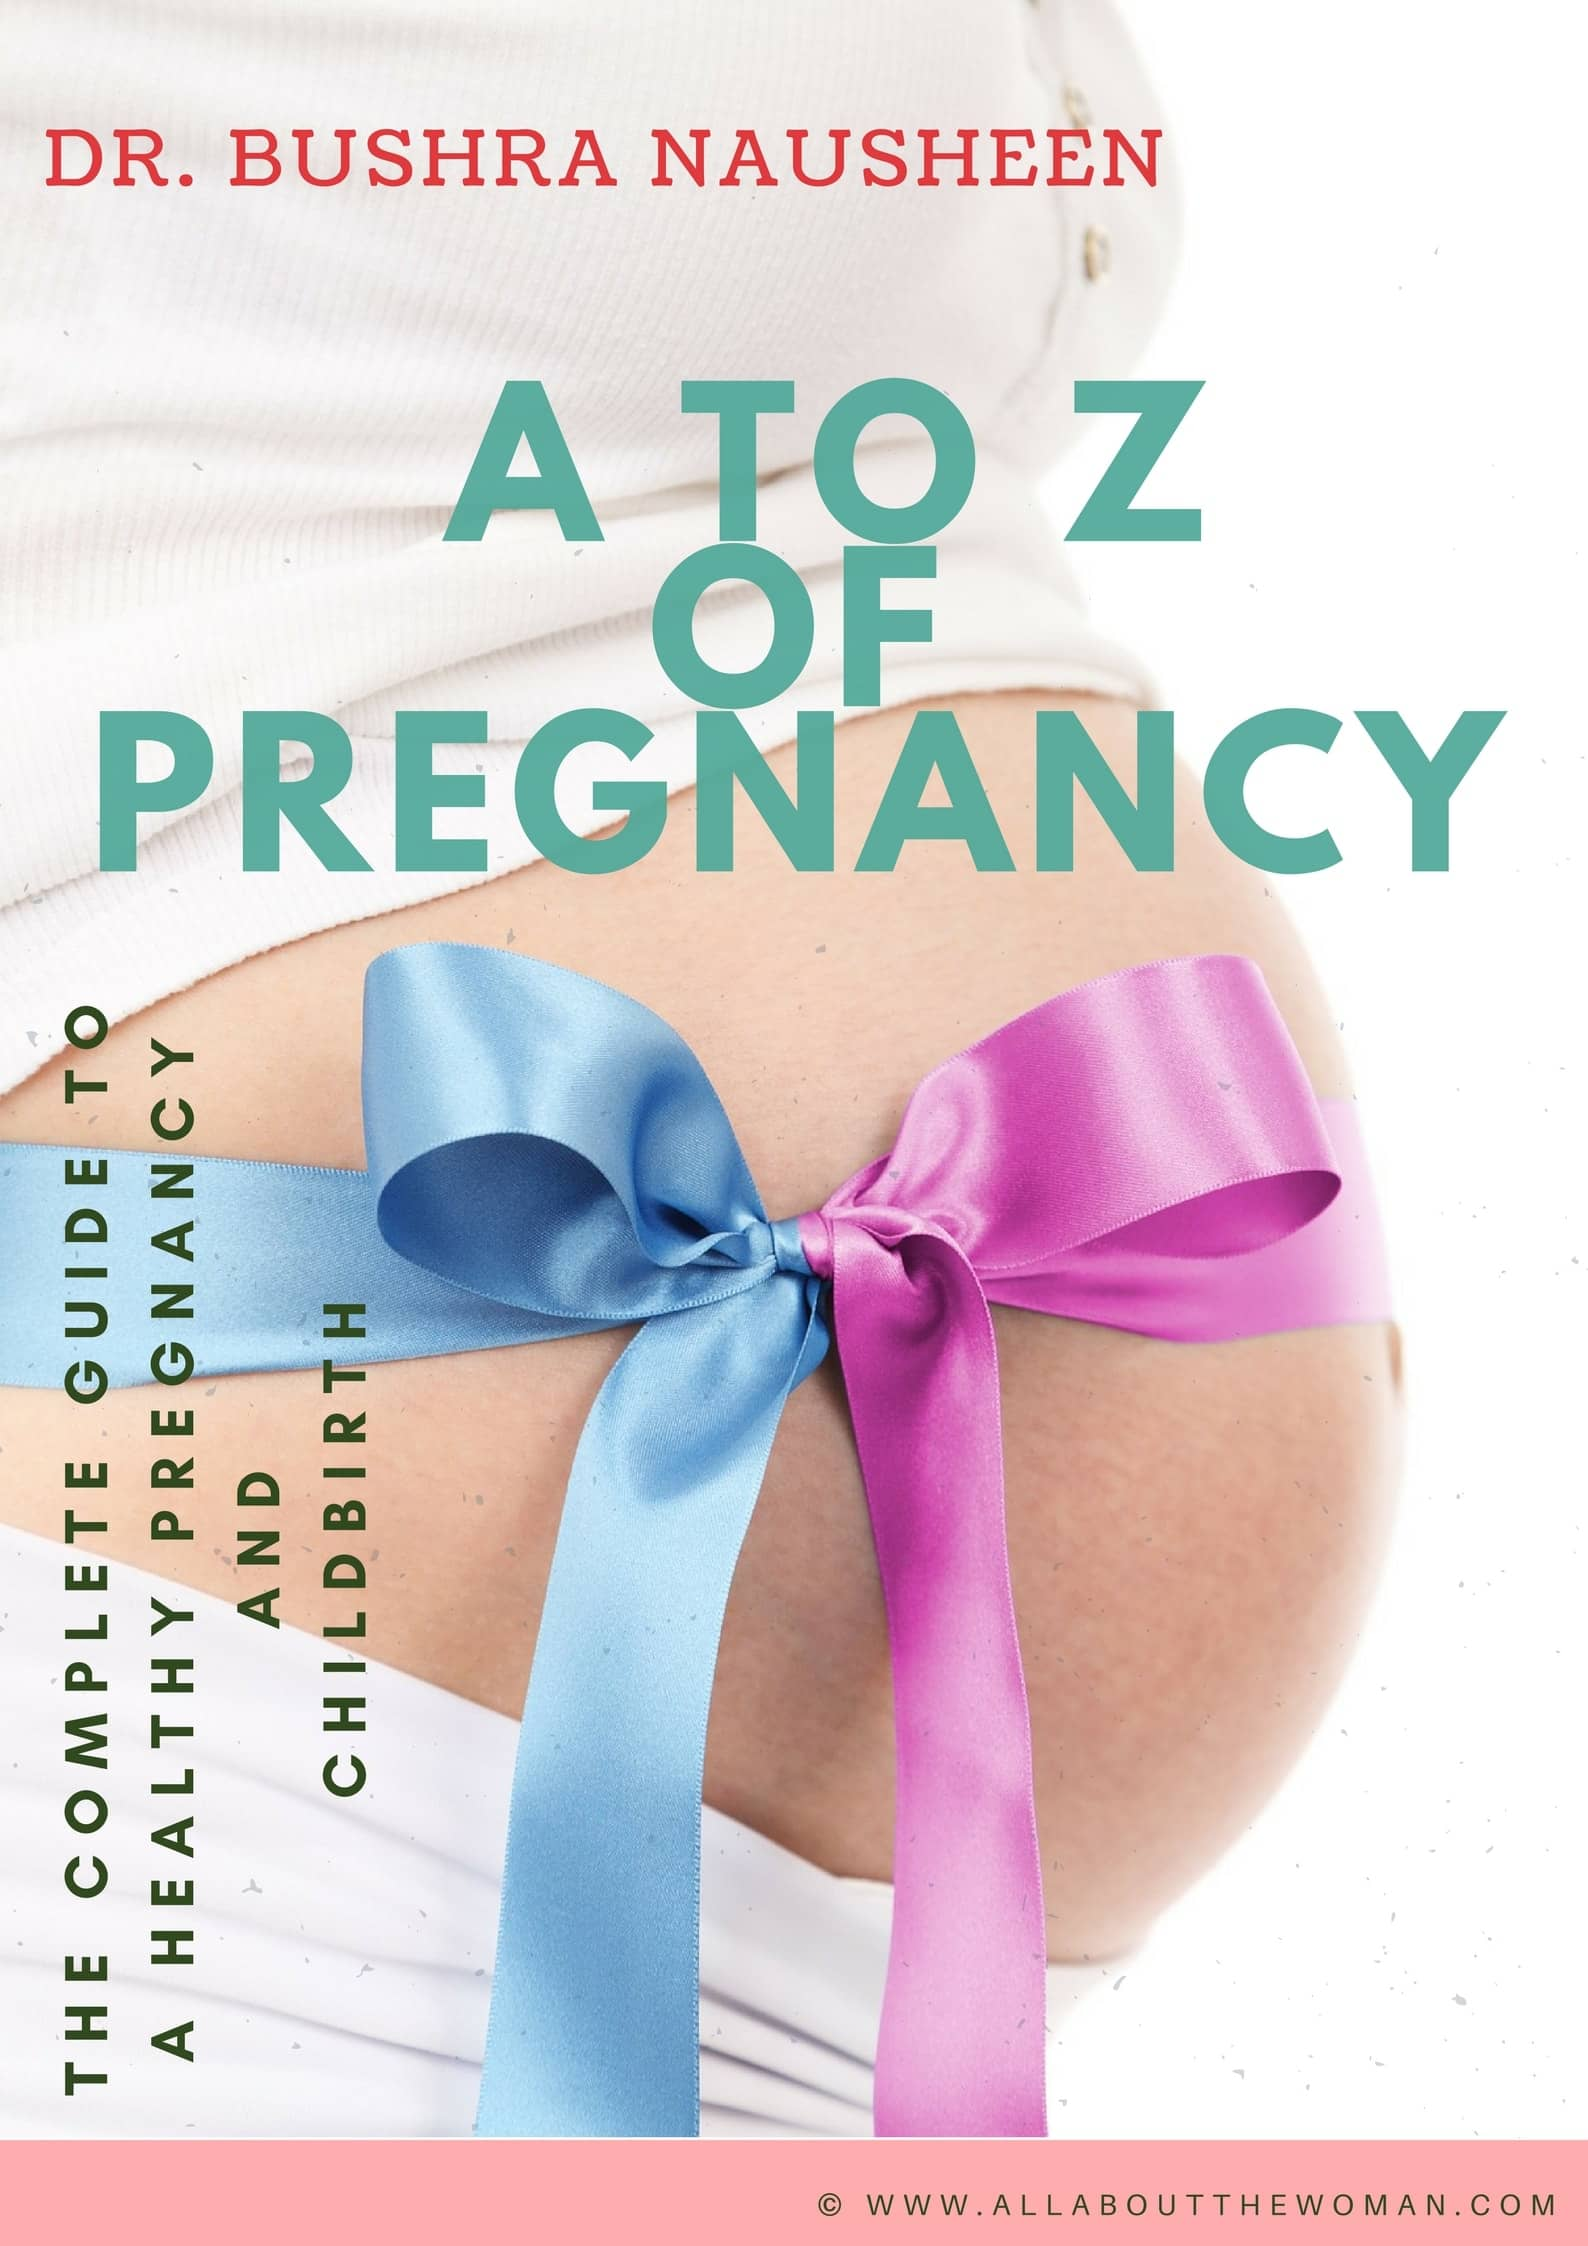 A to Z of Pregnancy - The Complete Guide to a Healthy Pregnancy and Childbirth